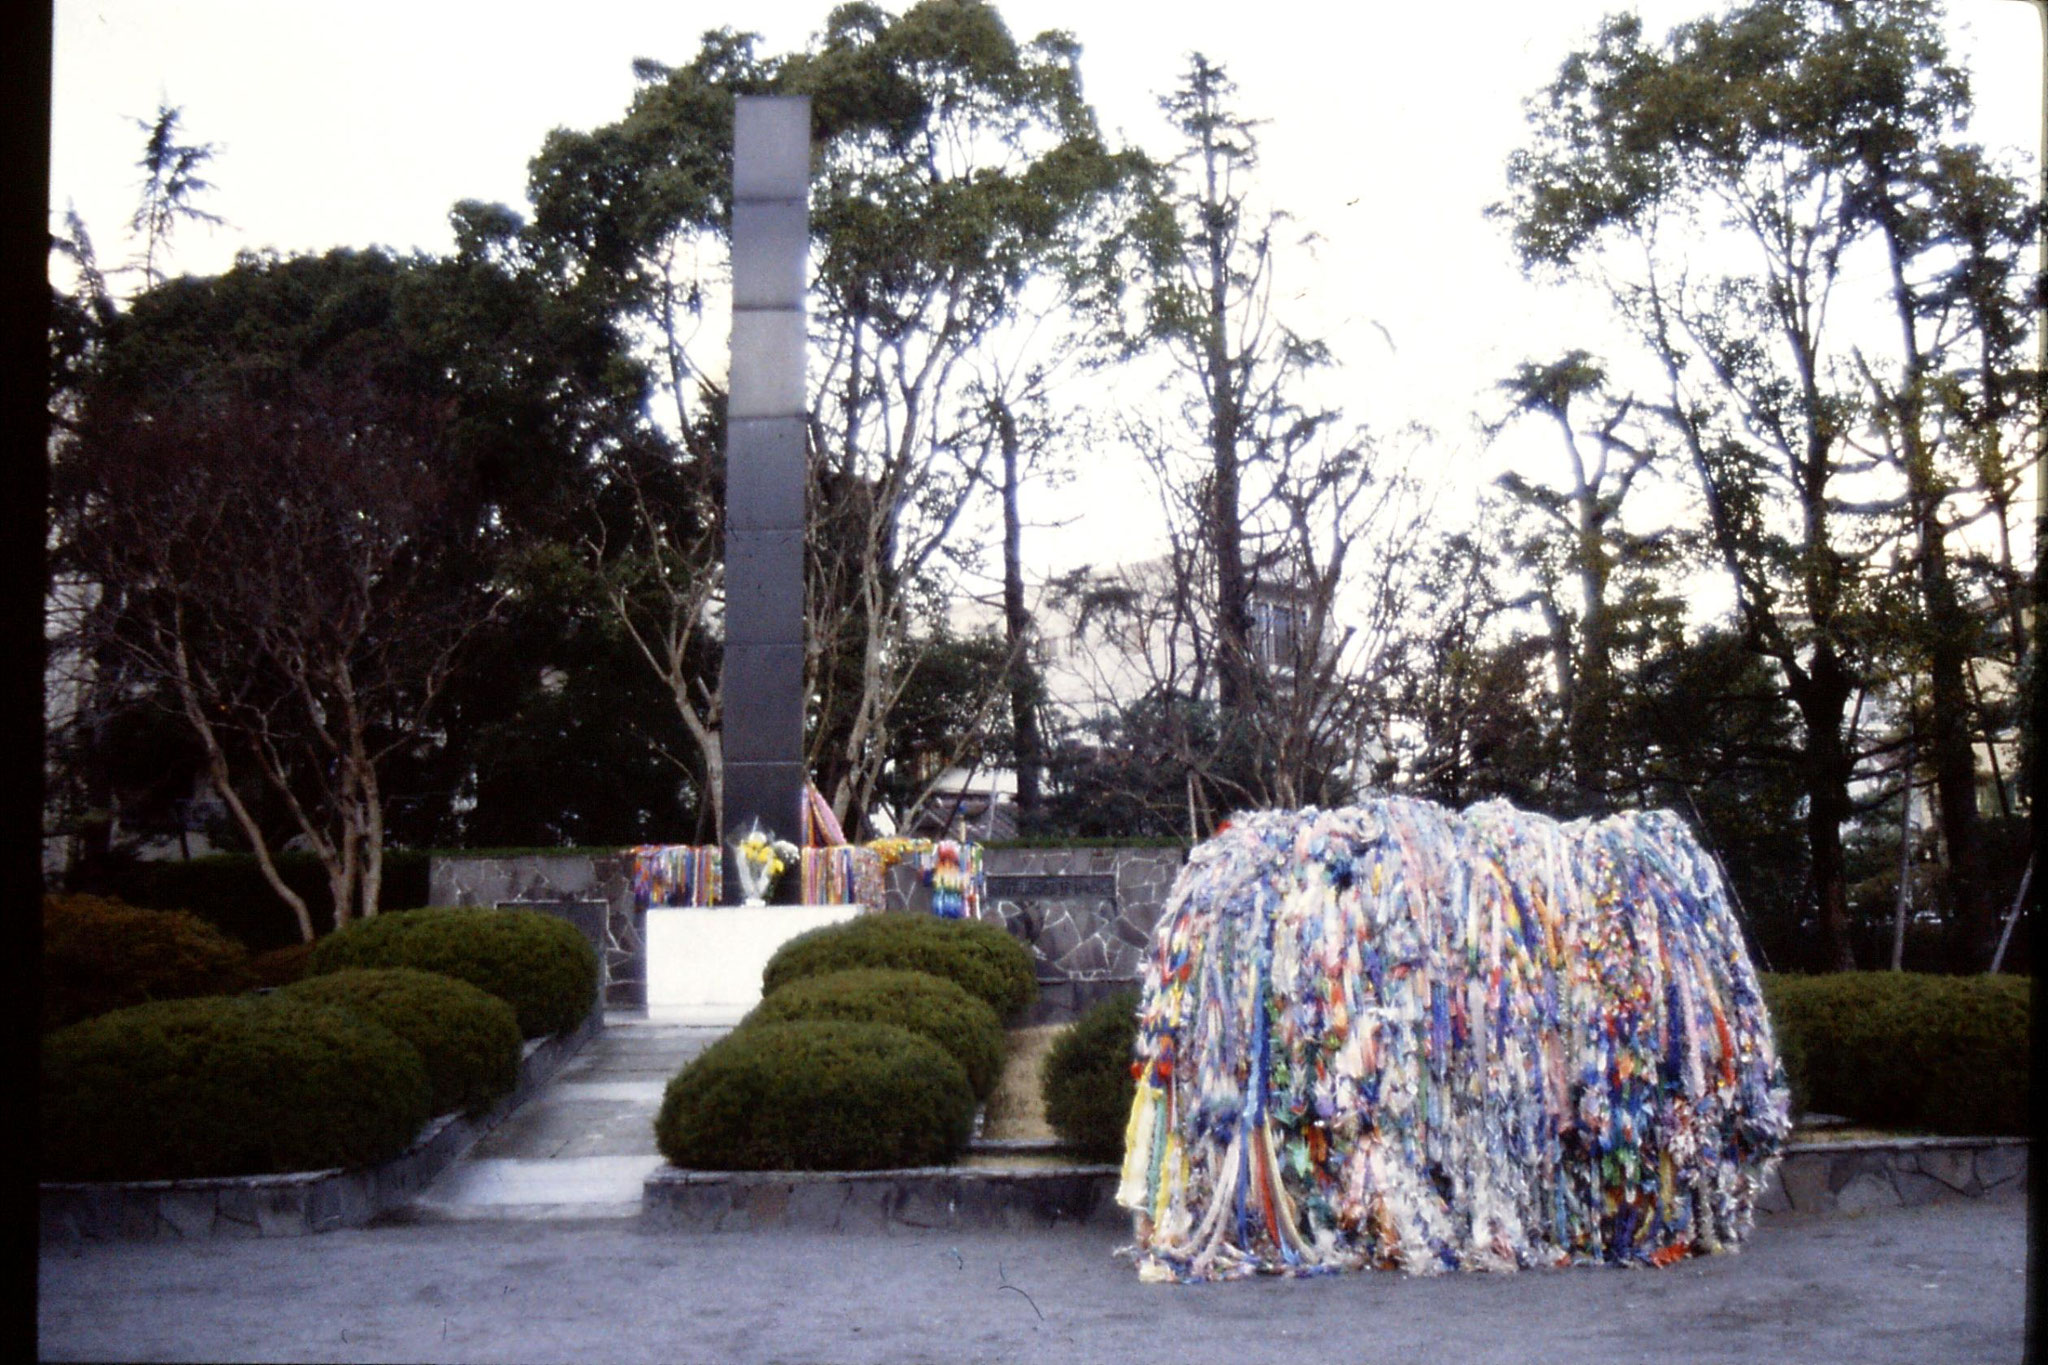 20/1/1989: 36: hypocentre memorial at Nagasaki